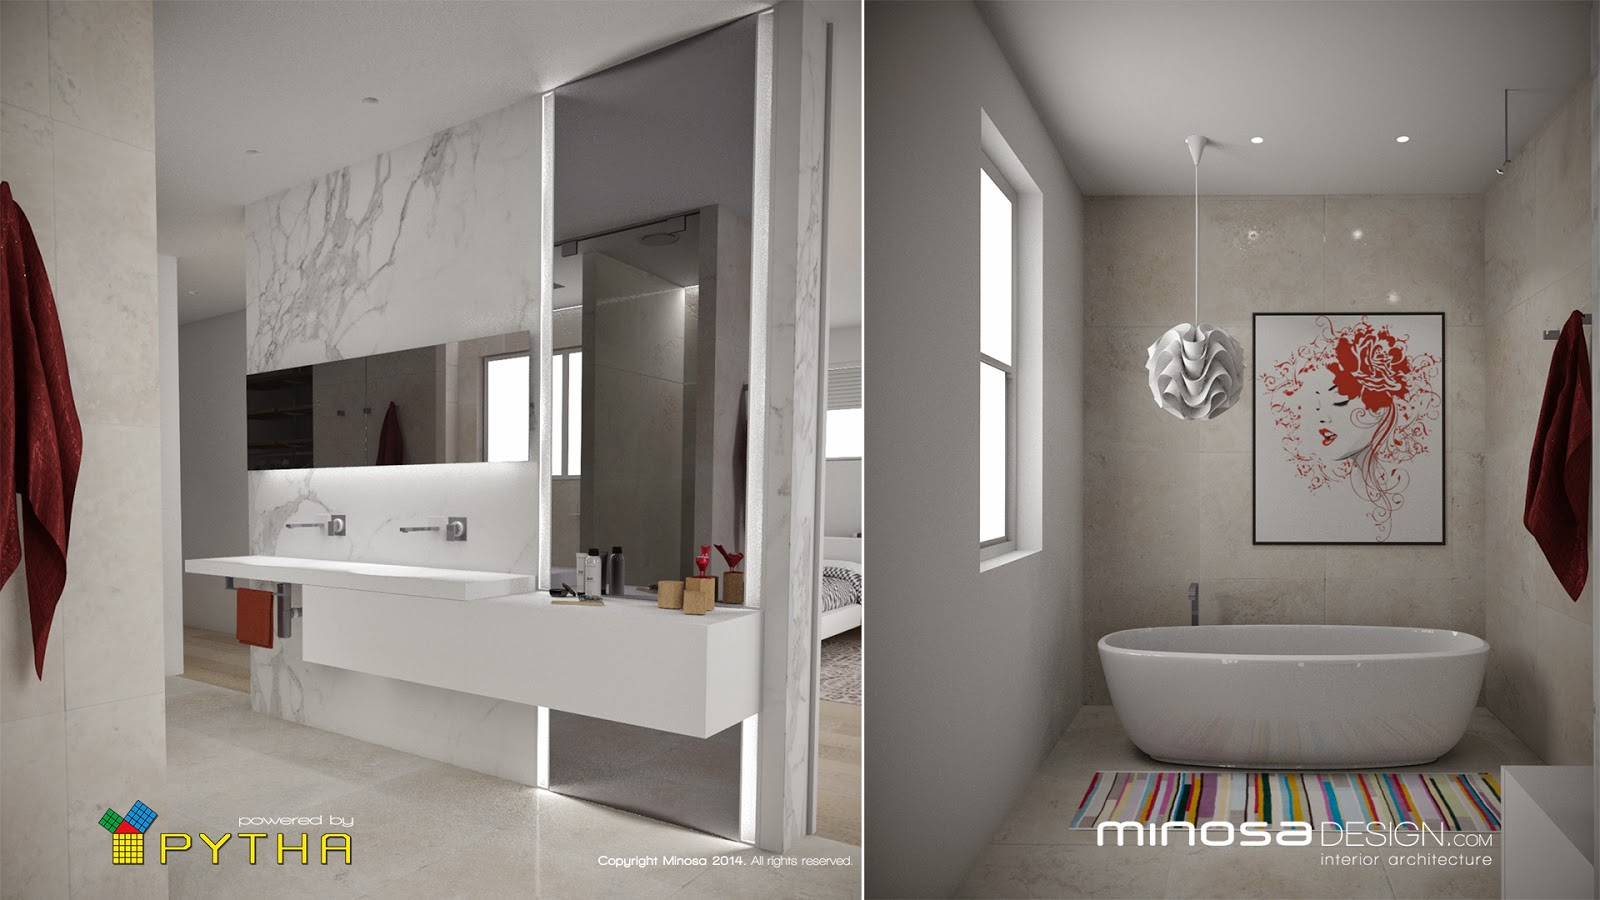 Minosa: 3D Rendering on nature bathroom design, diy bathroom design, colonial bathroom design, kitchen design, girls bathroom design, school bathroom design, restaurant bathroom design, designer bathroom design, joanna gaines bathroom design, tuscan bathroom design, anime bathroom design, african bathroom design, horror bathroom design, apartment bathroom design, elegant rustic bathroom design, led bathroom design, military bathroom design, timeless bathroom design, minimalist bathroom design, art deco bathroom design,